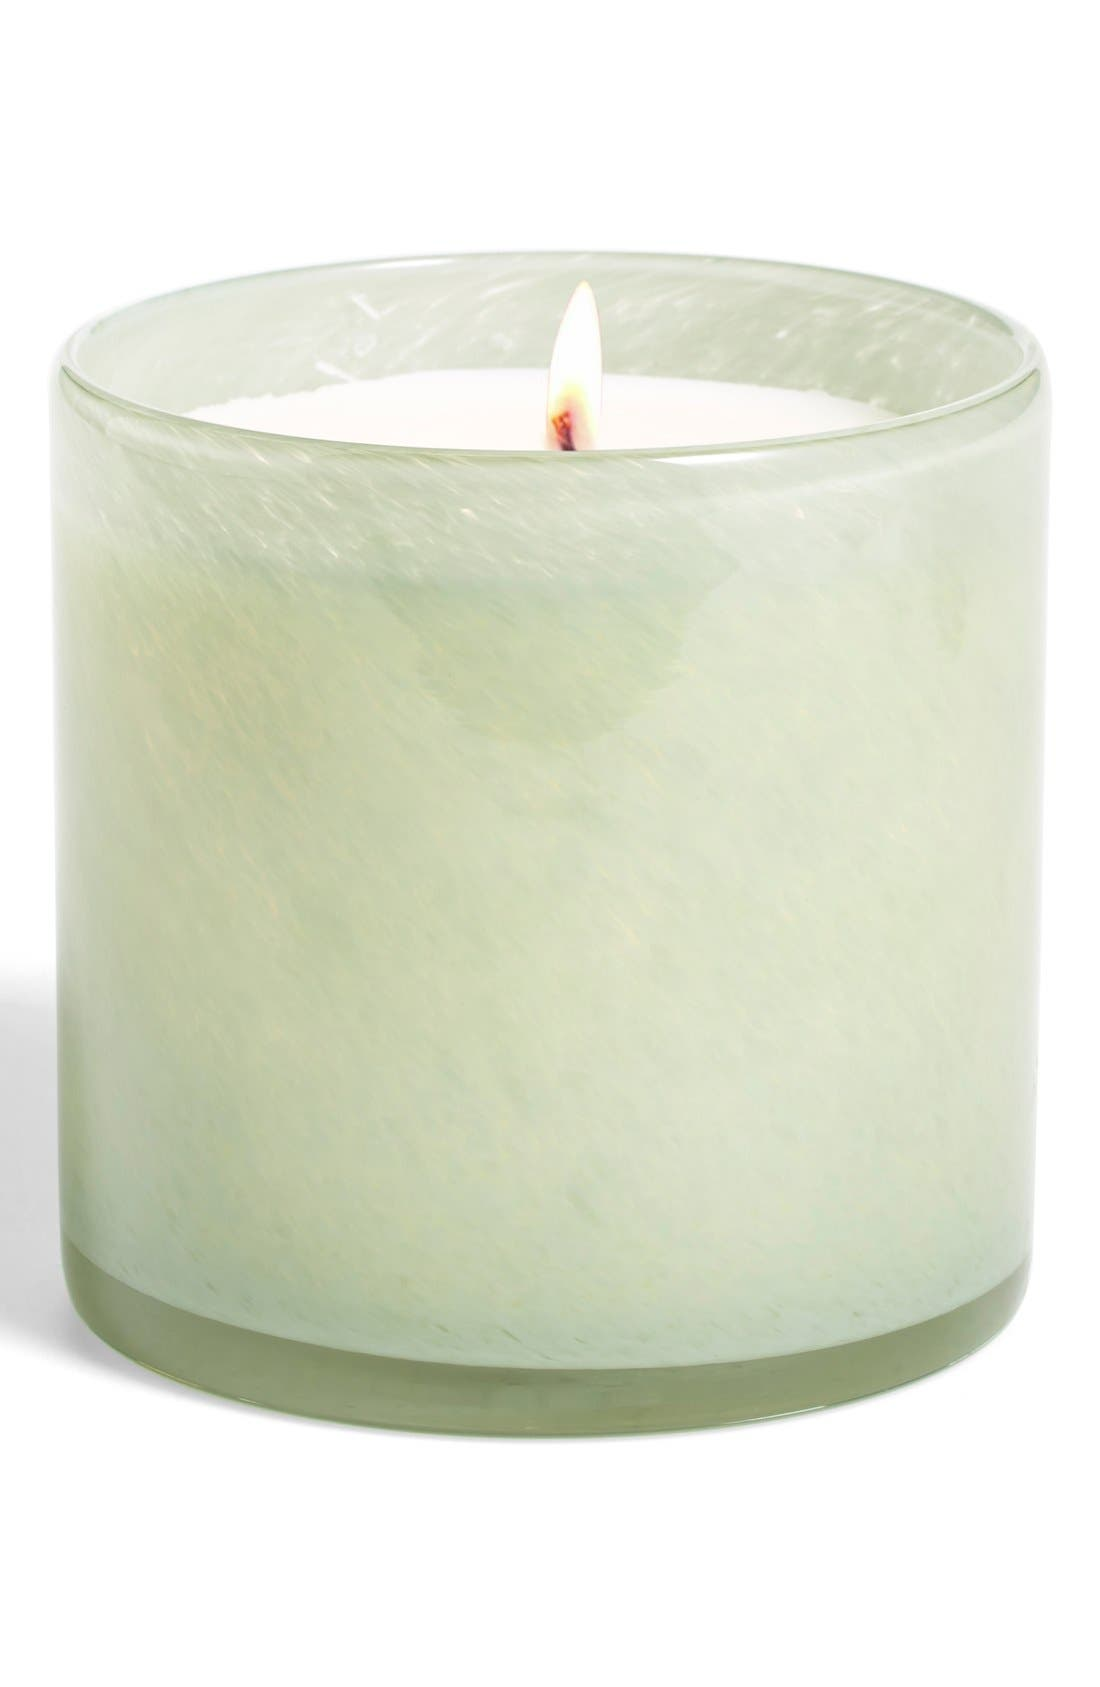 'Fresh Cut Gardenia - Living Room' Candle,                             Main thumbnail 1, color,                             No Color